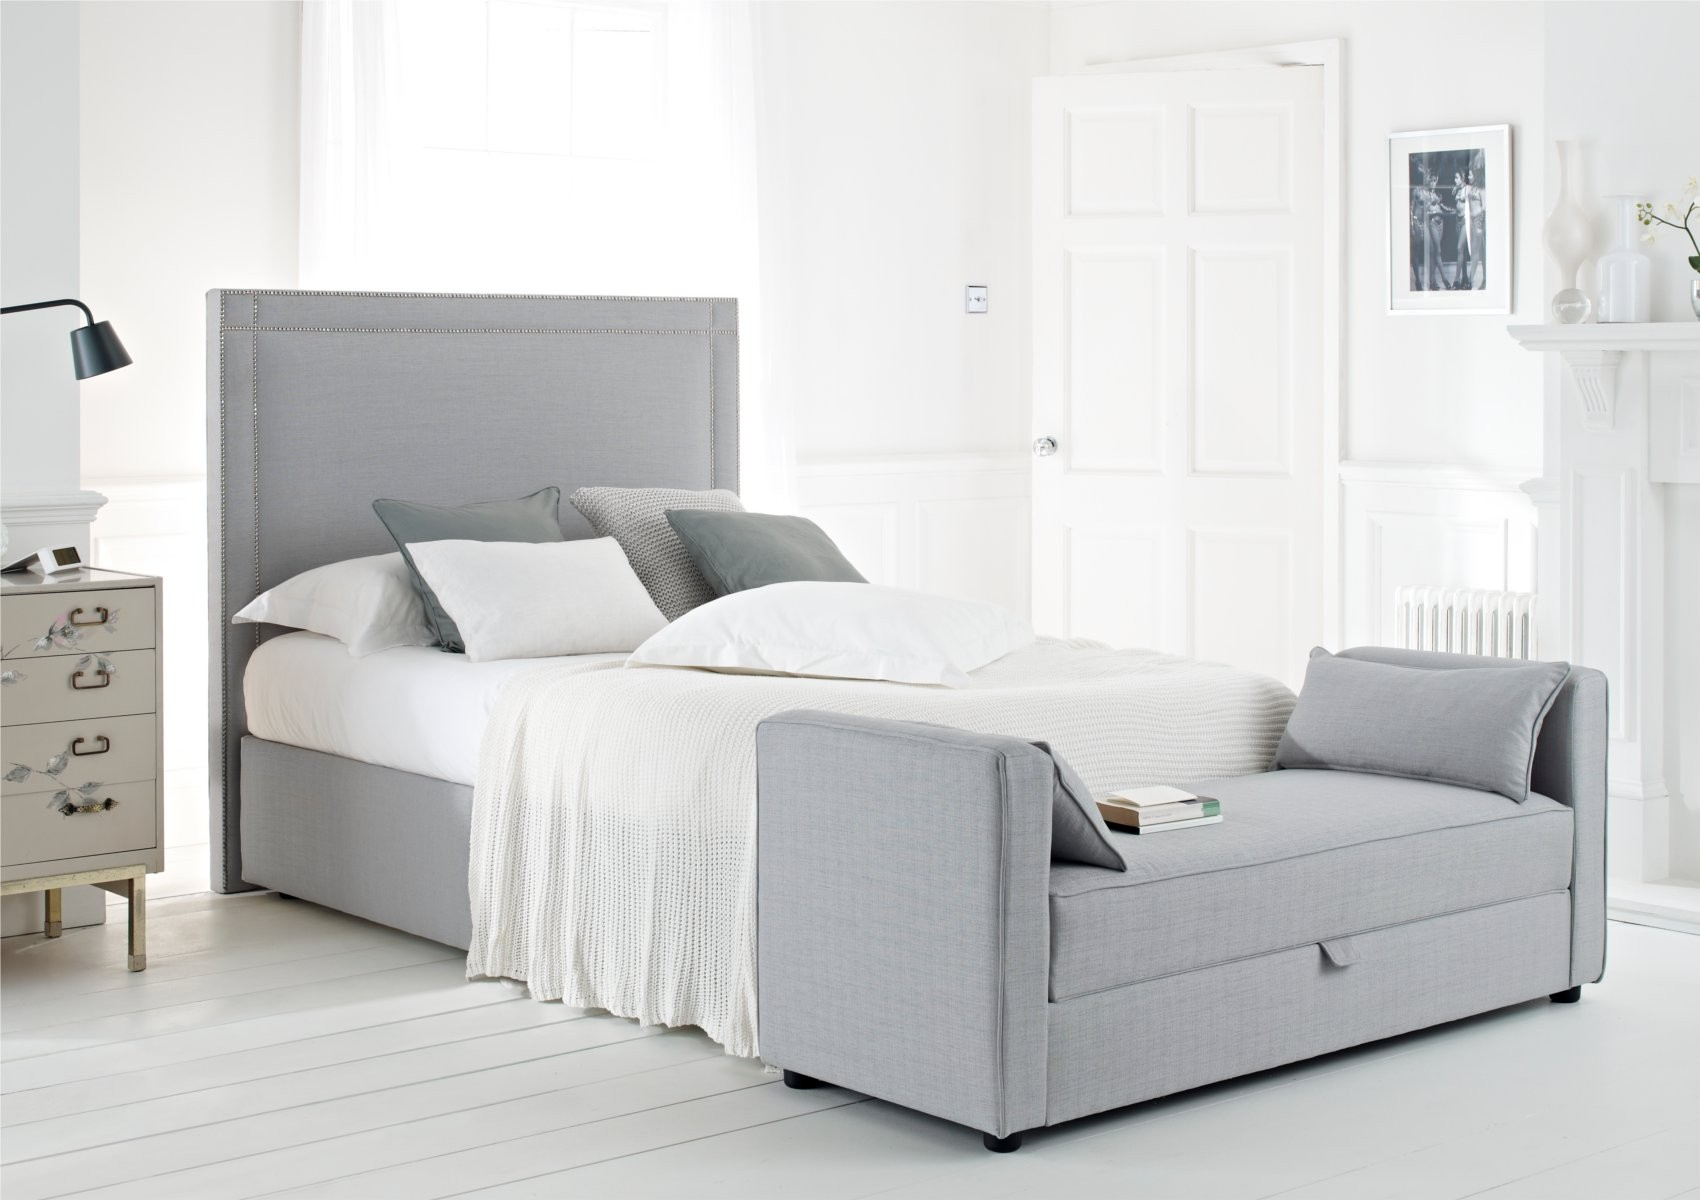 3 reasons to shop for super king size bed frame